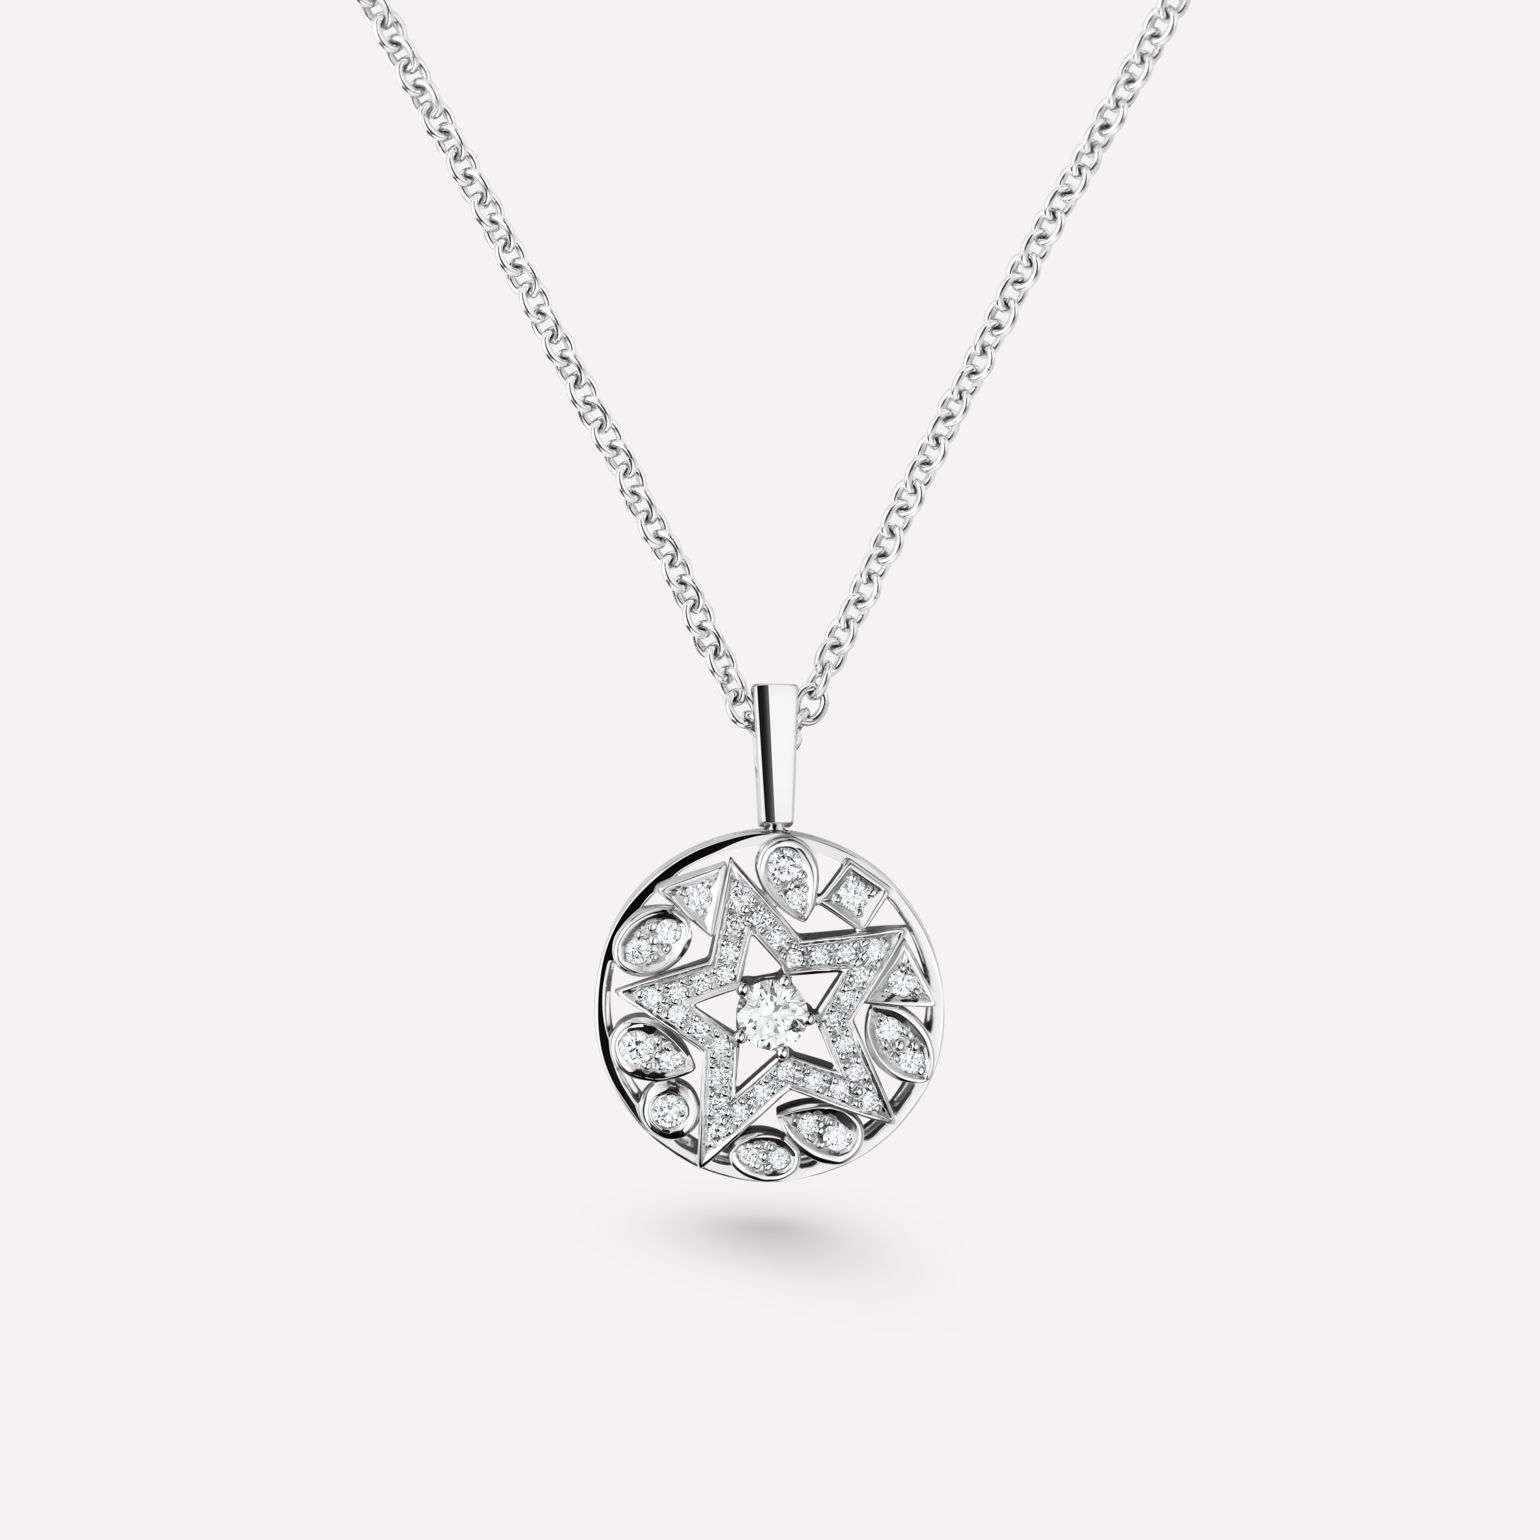 Comète necklace Round star necklace, in 18K white gold and diamonds with one center diamond